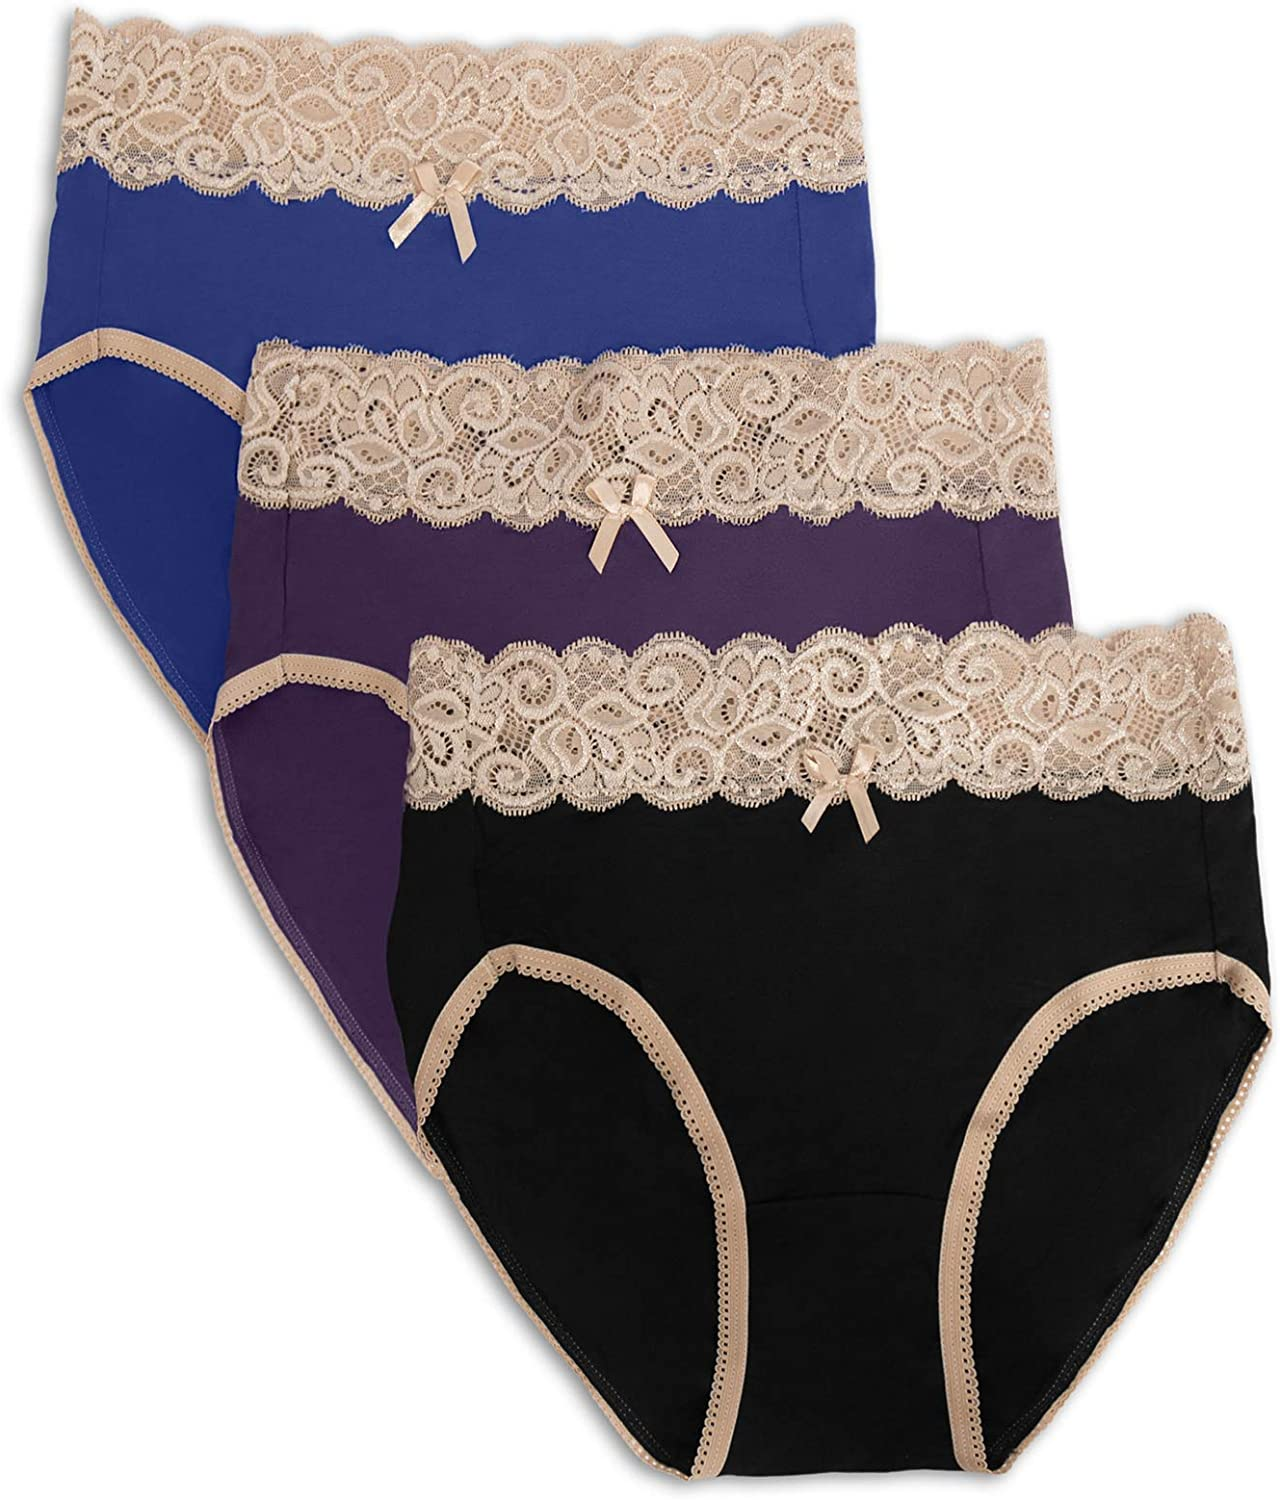 Kindred Bravely High Waist Postpartum Underwear & C-Section Recovery Maternity Panties 5 Pack: Amazon.ca: Clothing & Accessories